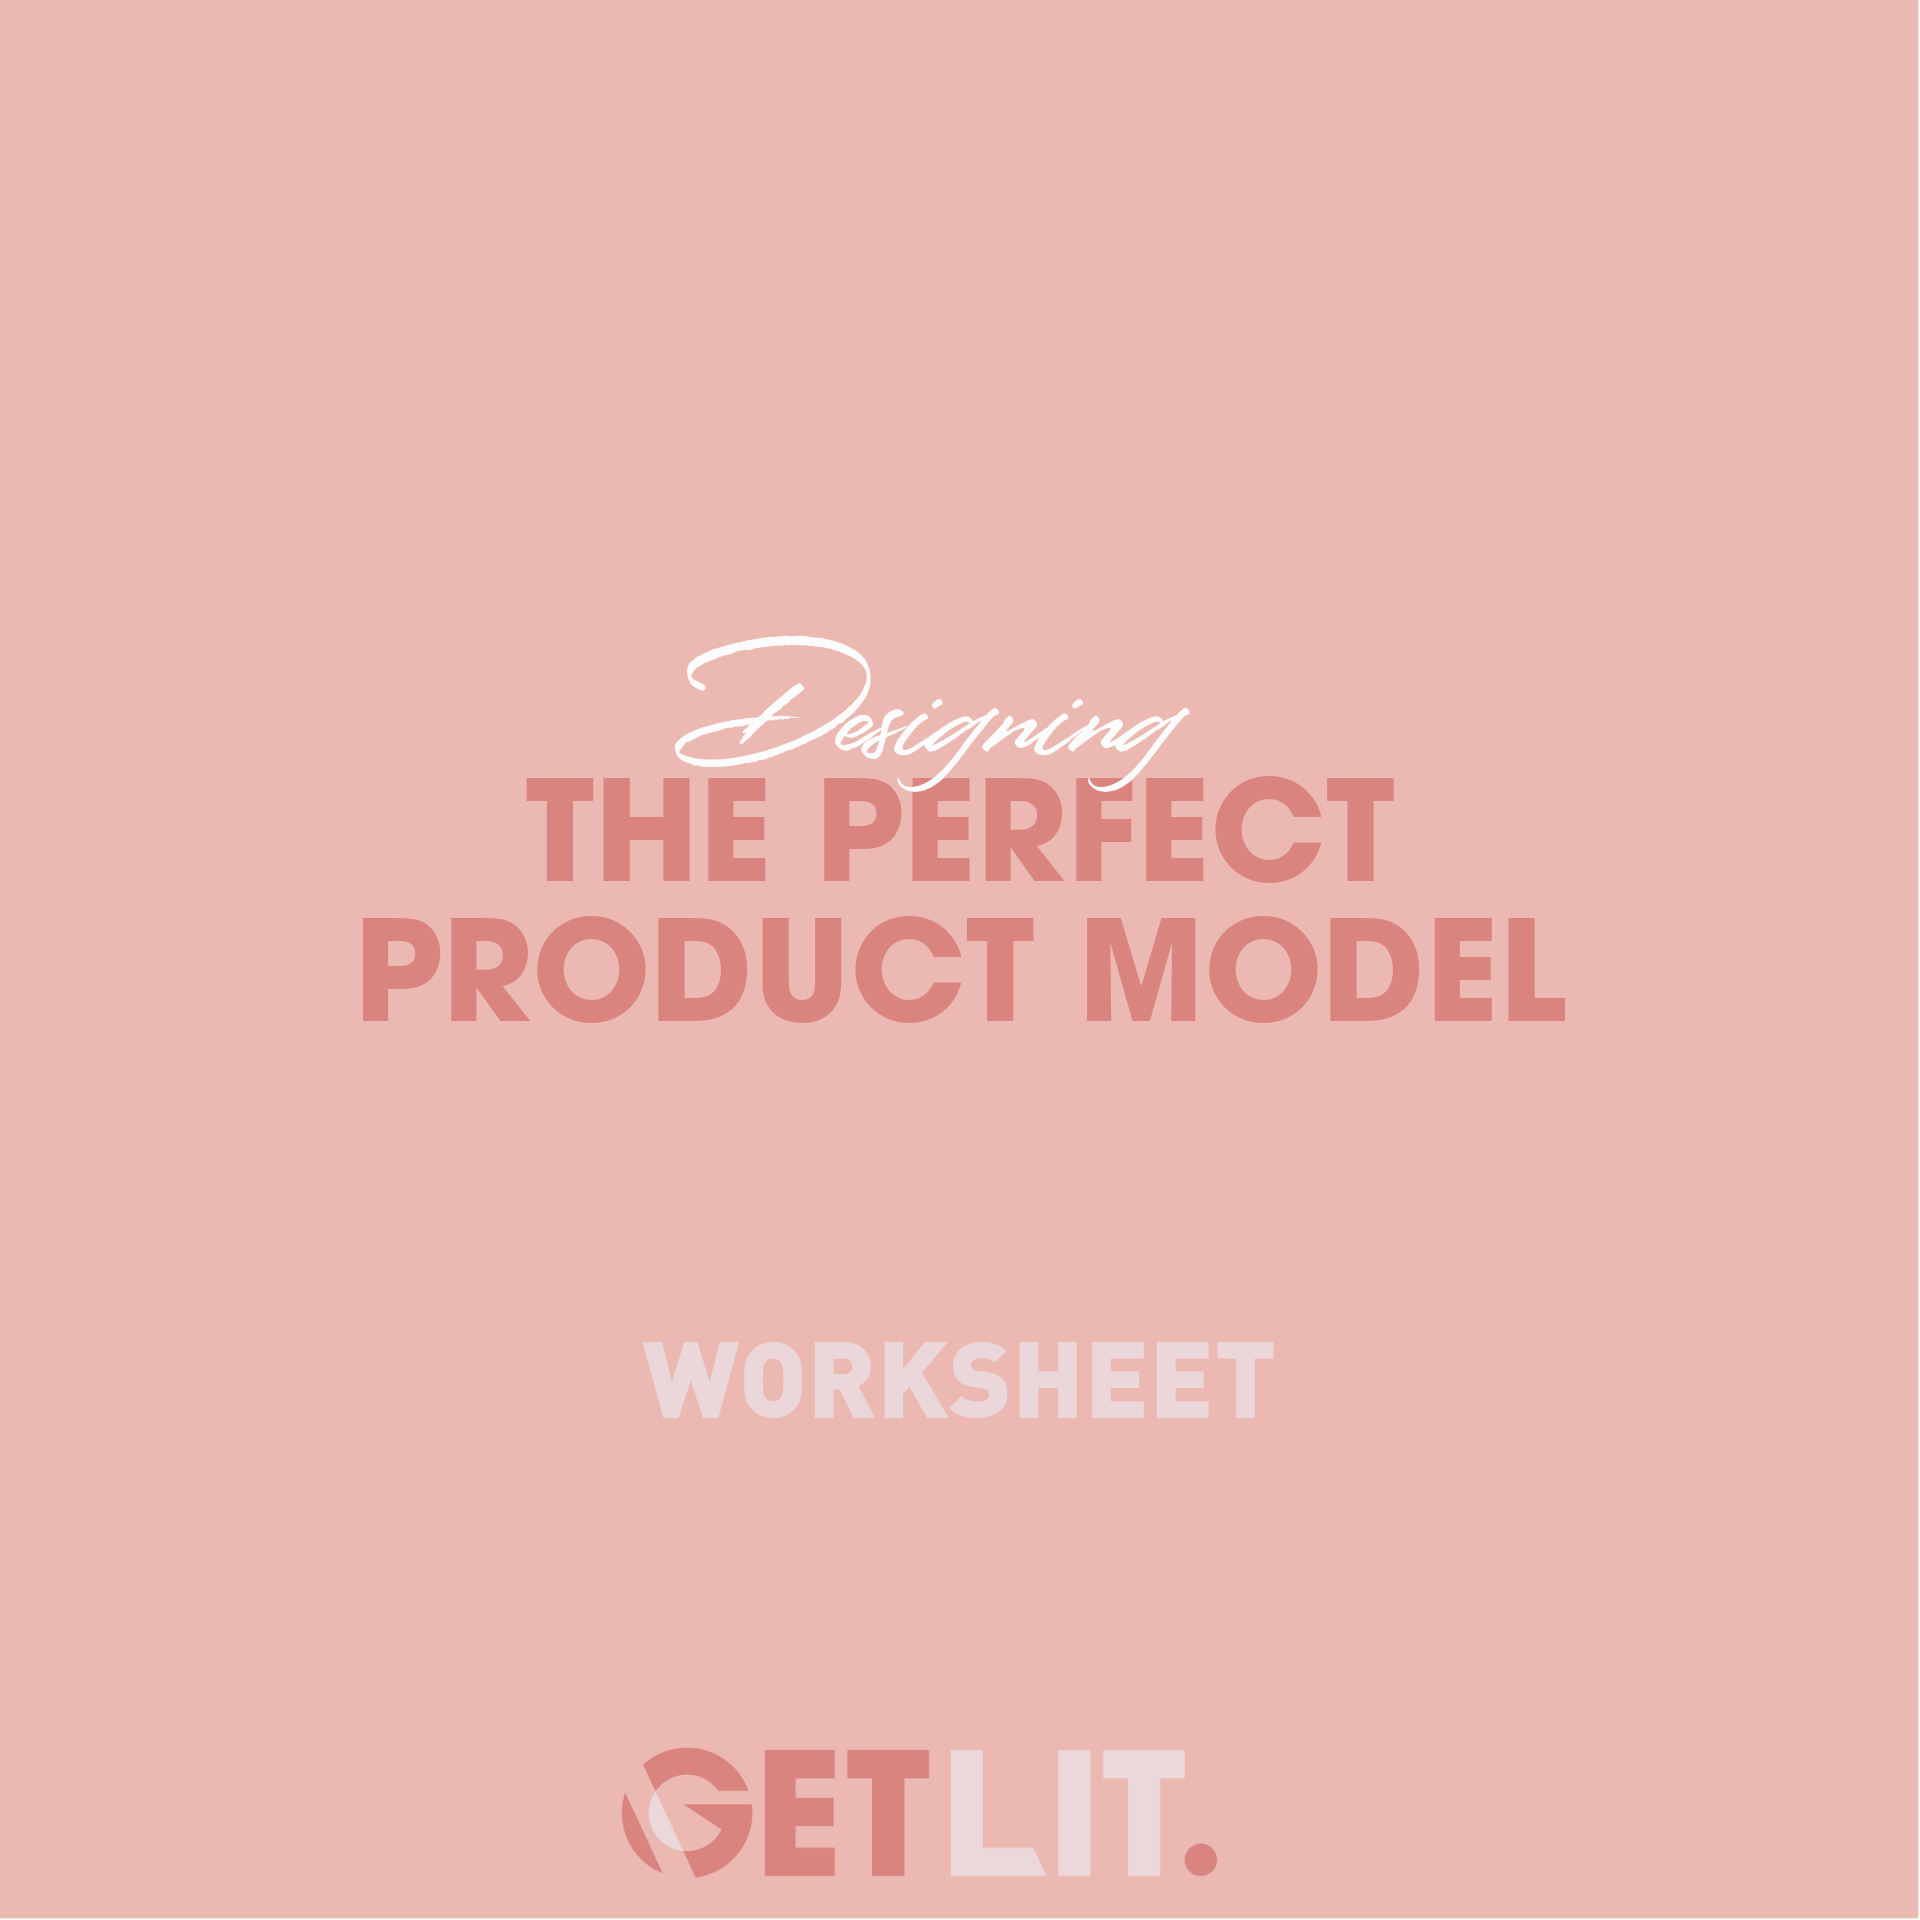 DESIGNING THE PERFECT PRODUCT MODEL - Getting your products right is key to a successful business, from knowing when to launch what, how to launch it and knowing when to pace yourself is key. I am a big fan of having a service, or a business and the goal is to ultimately have a number of products that sit beneath it. This is why getting your mission right is so important, if you have a clear and solid foundation in a mission, you can create different products to execute it.